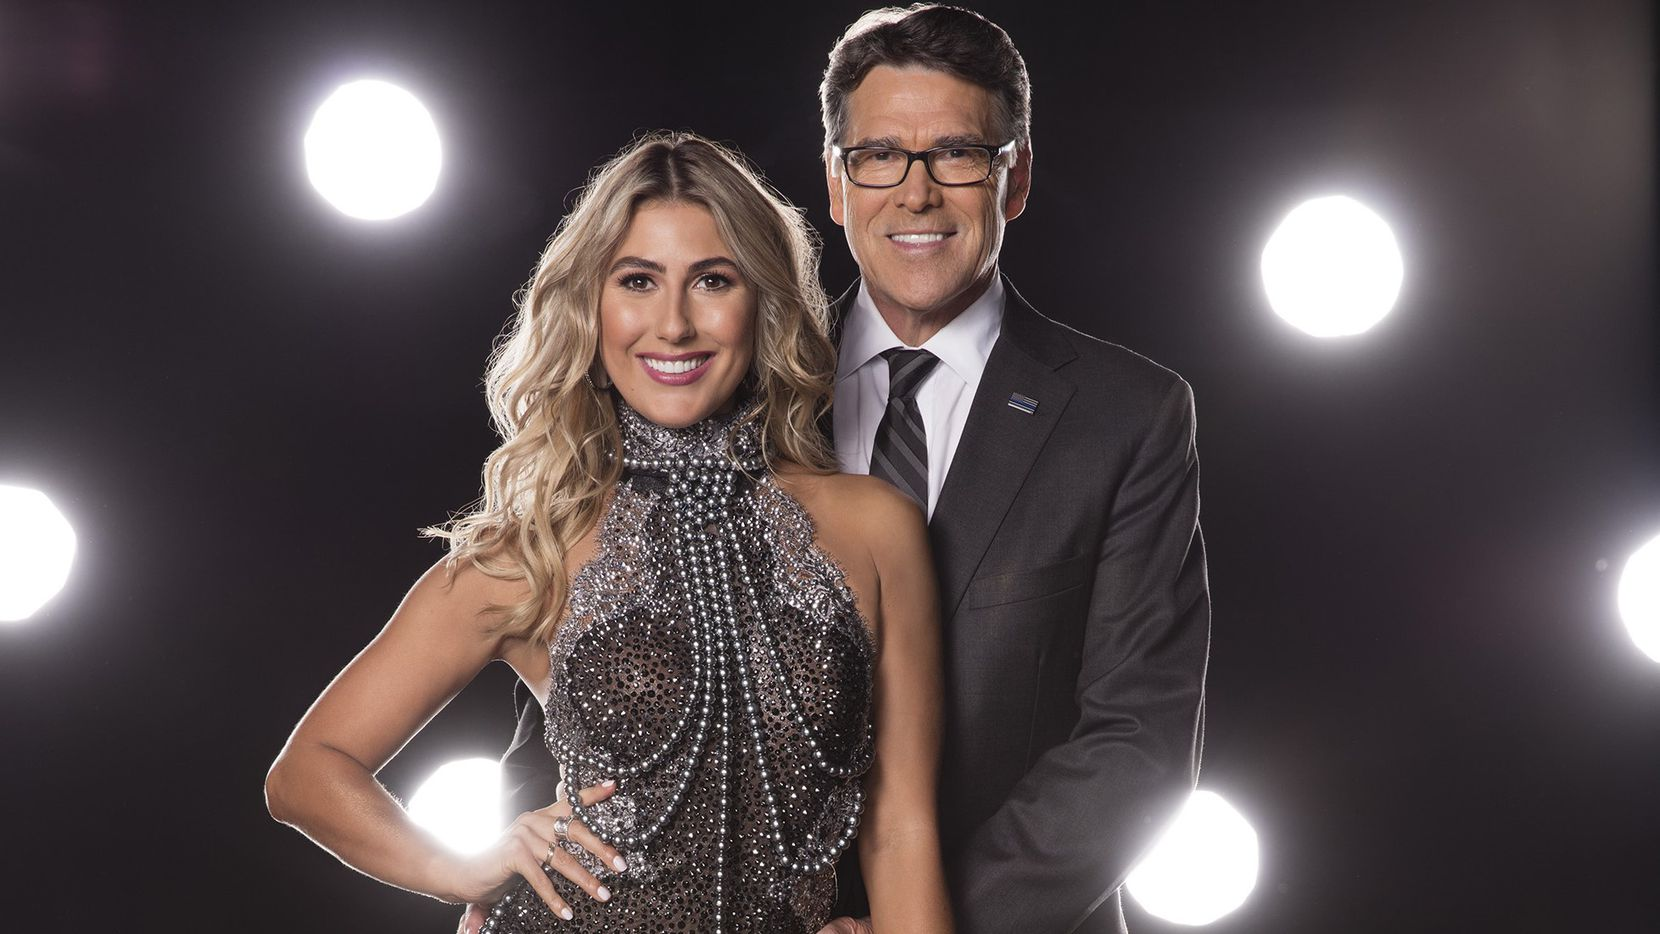 """Former Texas governor Rick Perry will pair with Emma Slater on """"Dancing with the Stars,"""" which starts its new season on Monday, Sept. 12, 2016. (Craig Sjodin/ABC)"""